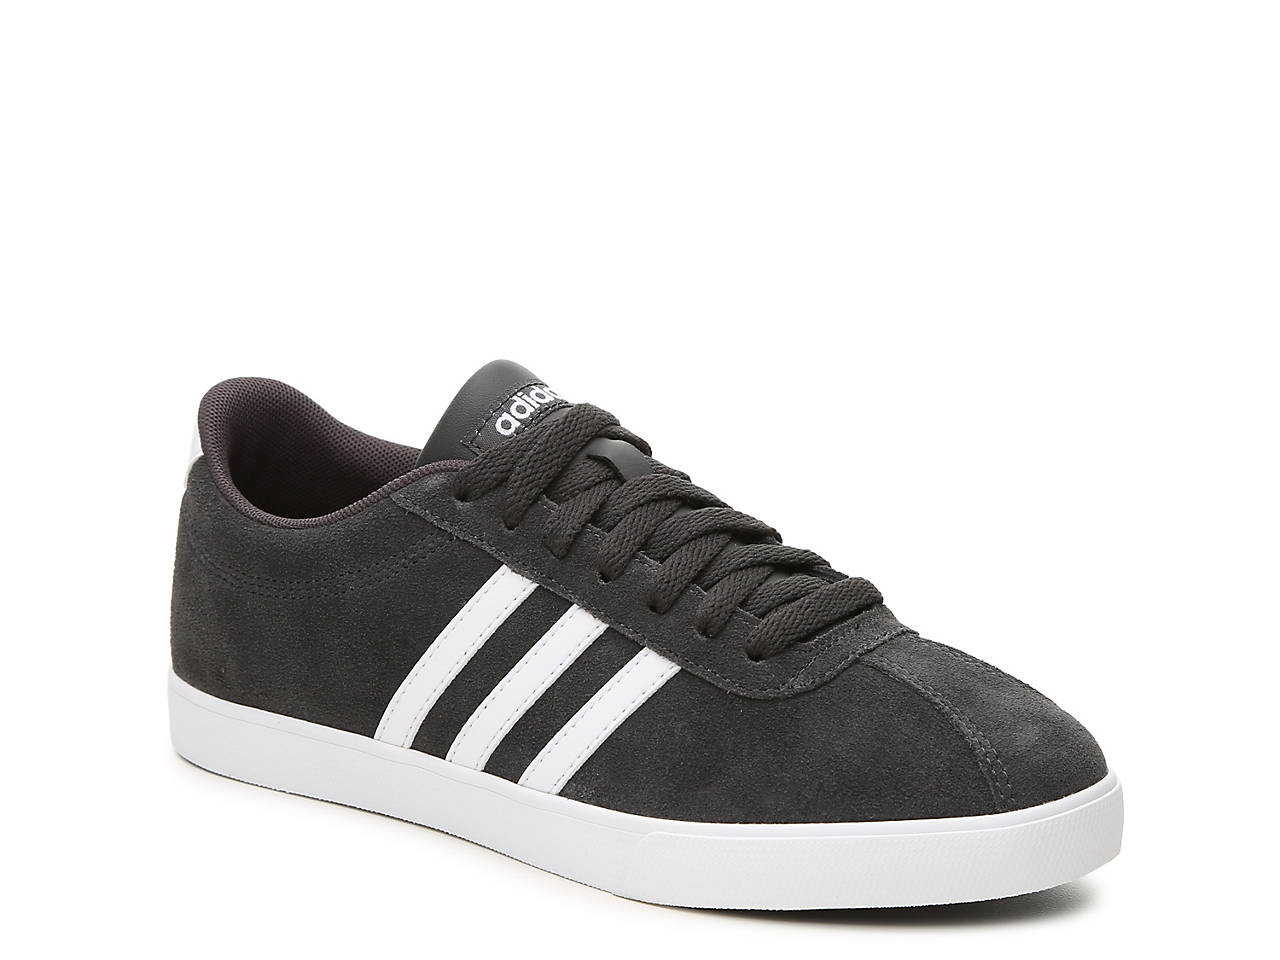 b45f5d3a757a8 adidas Courtset Sneaker - Women s Women s Shoes